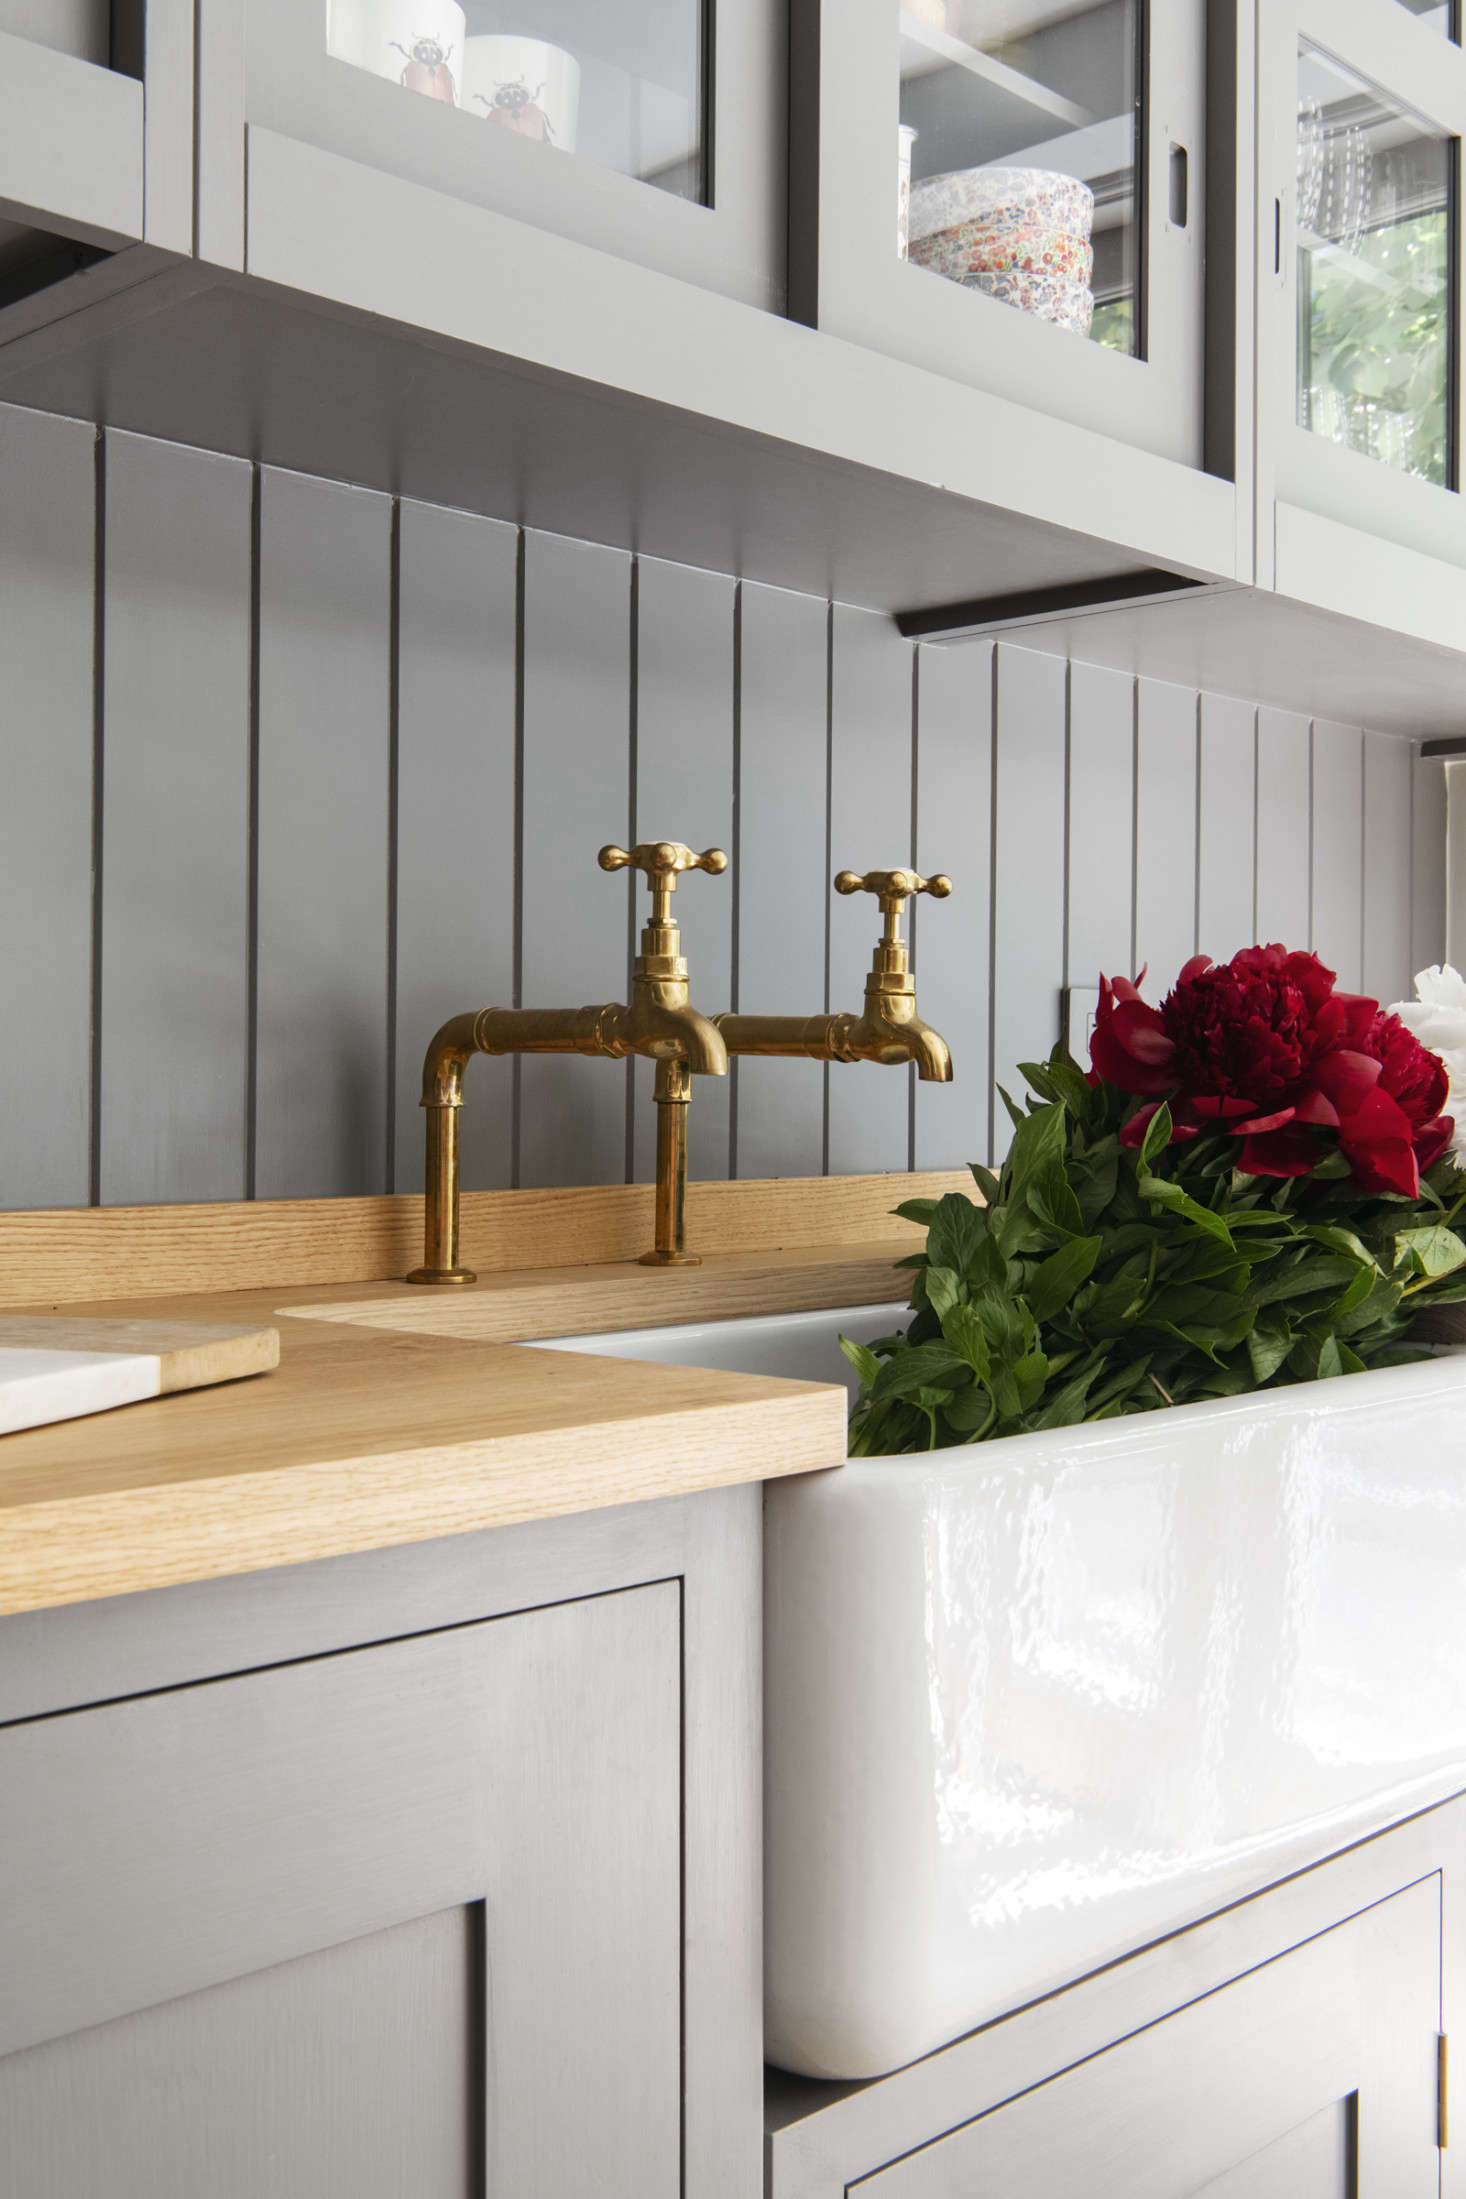 Barber Wilsons hot and cold taps in unlacquered brass and a Shaws Original farmhouse sink.The counter is Plain English oak butcher block.